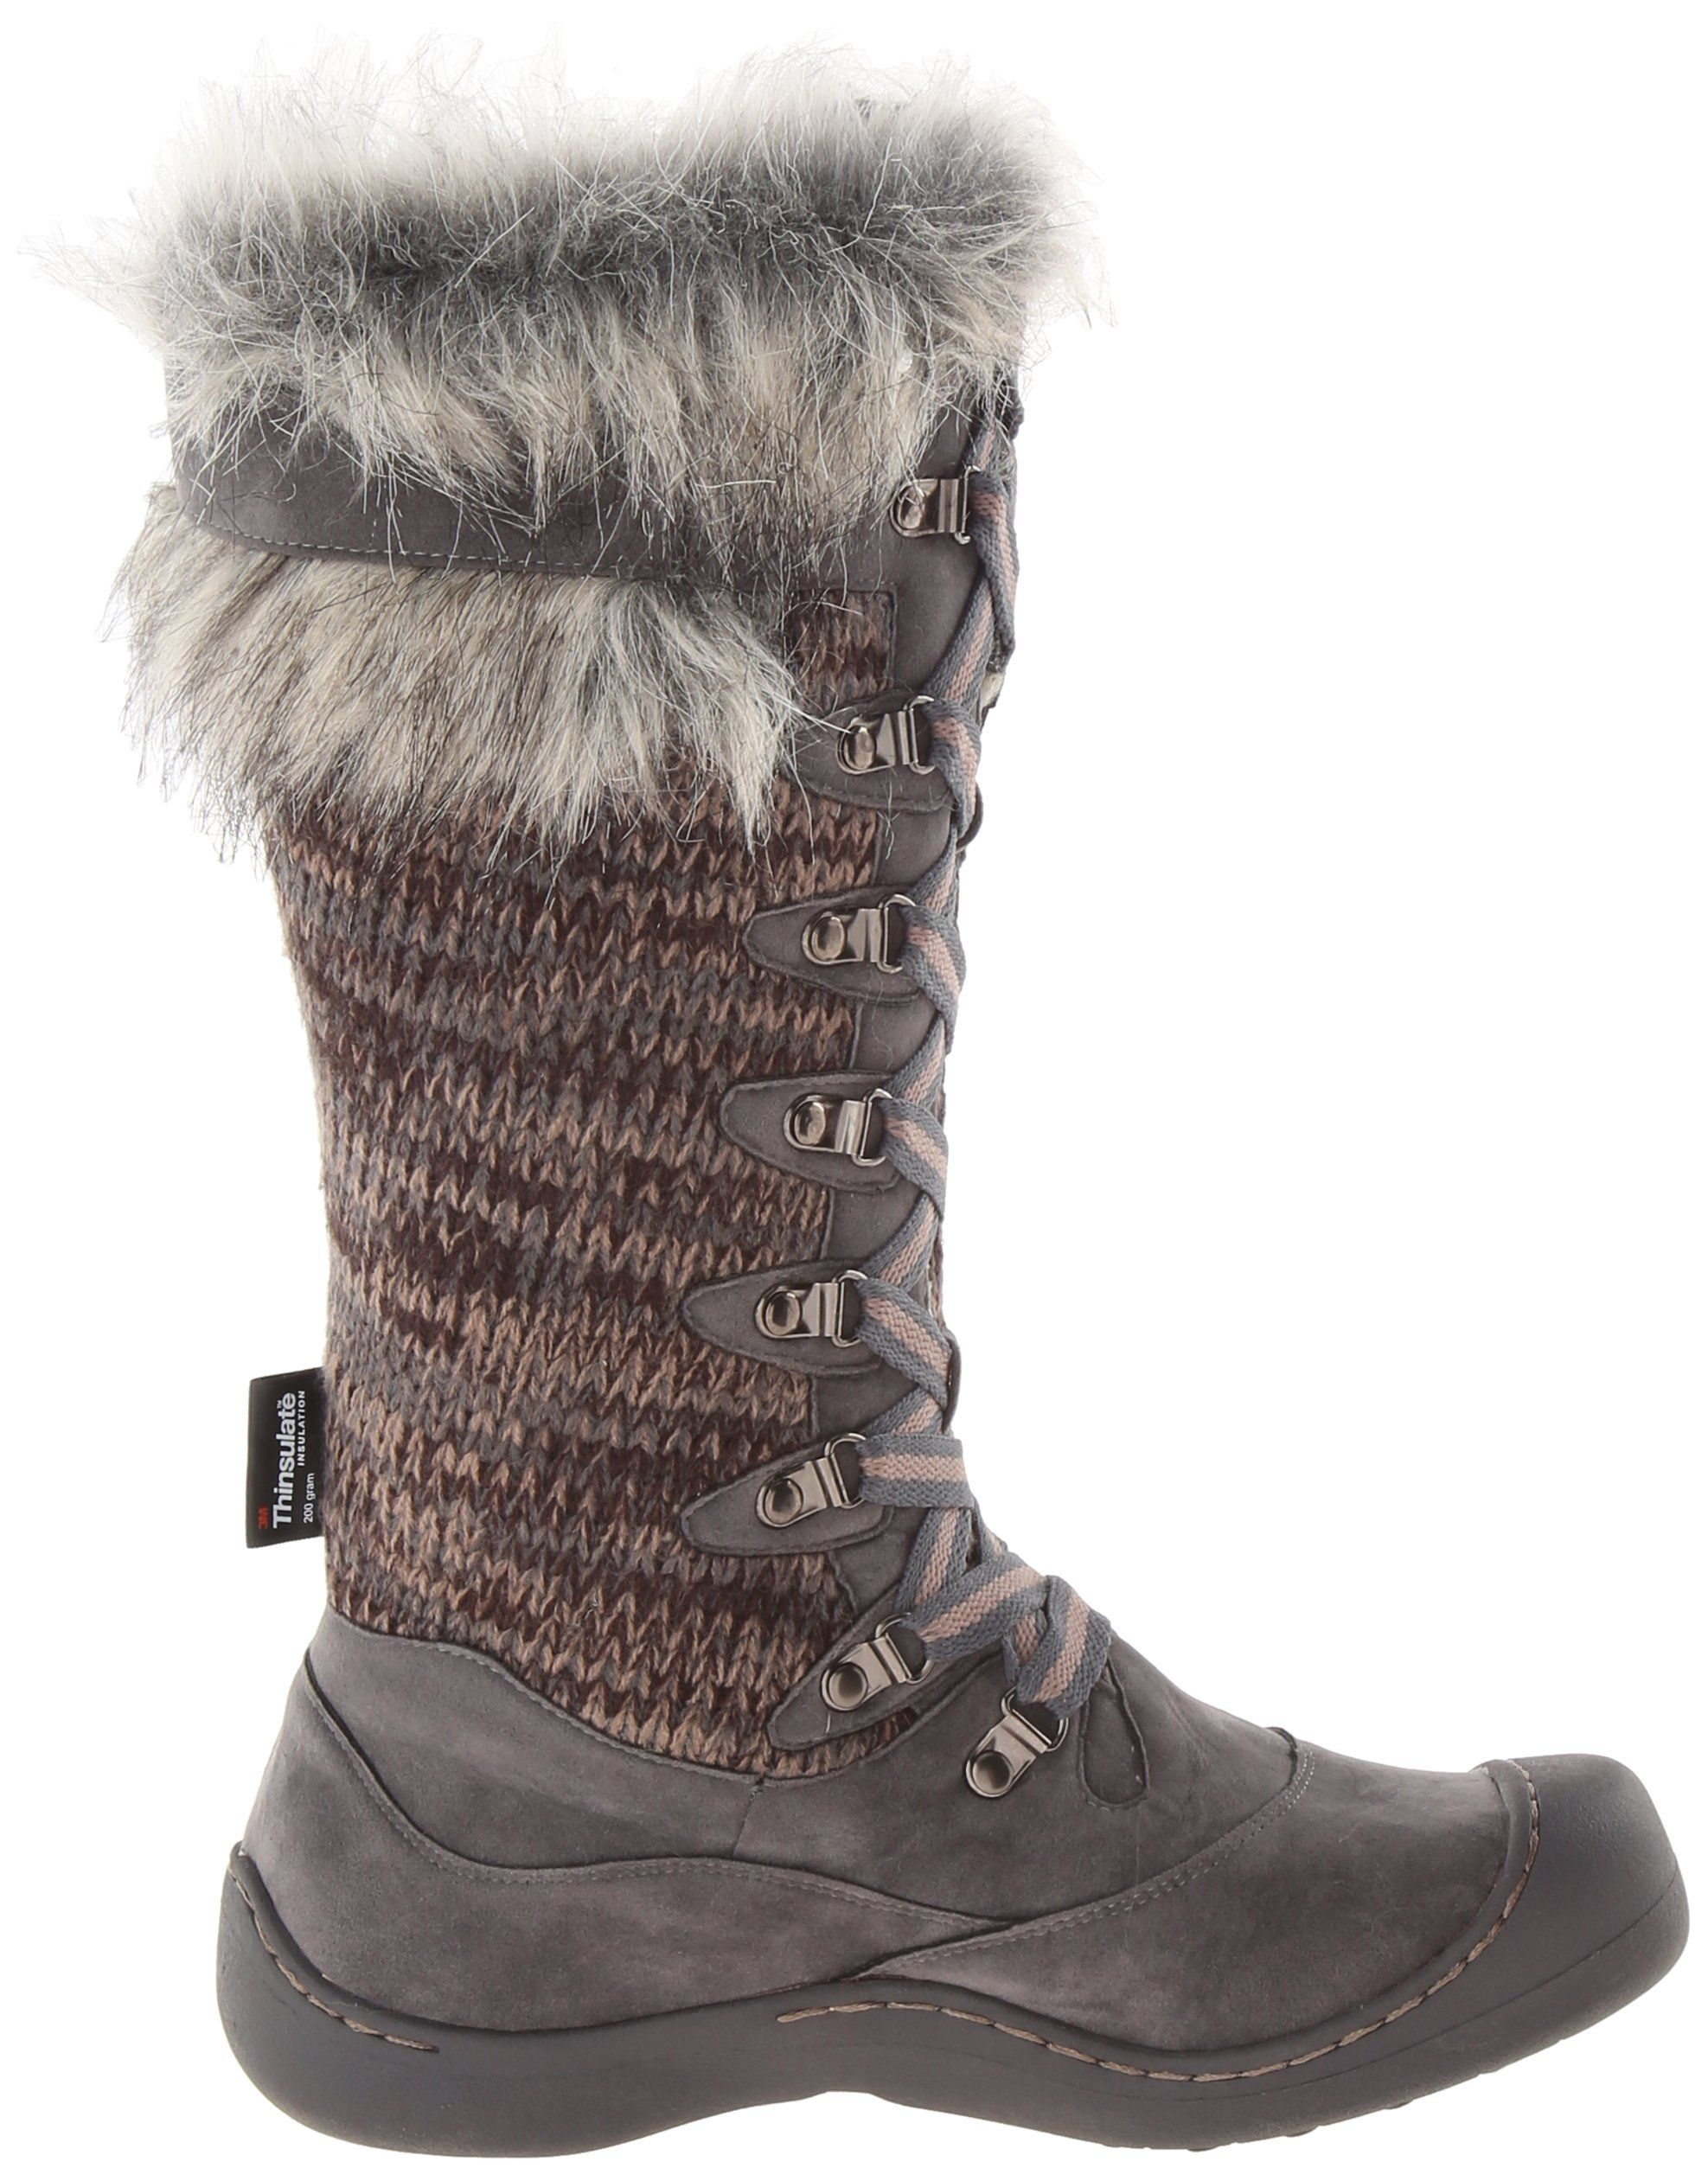 Women's Gray Snow Boots US 9